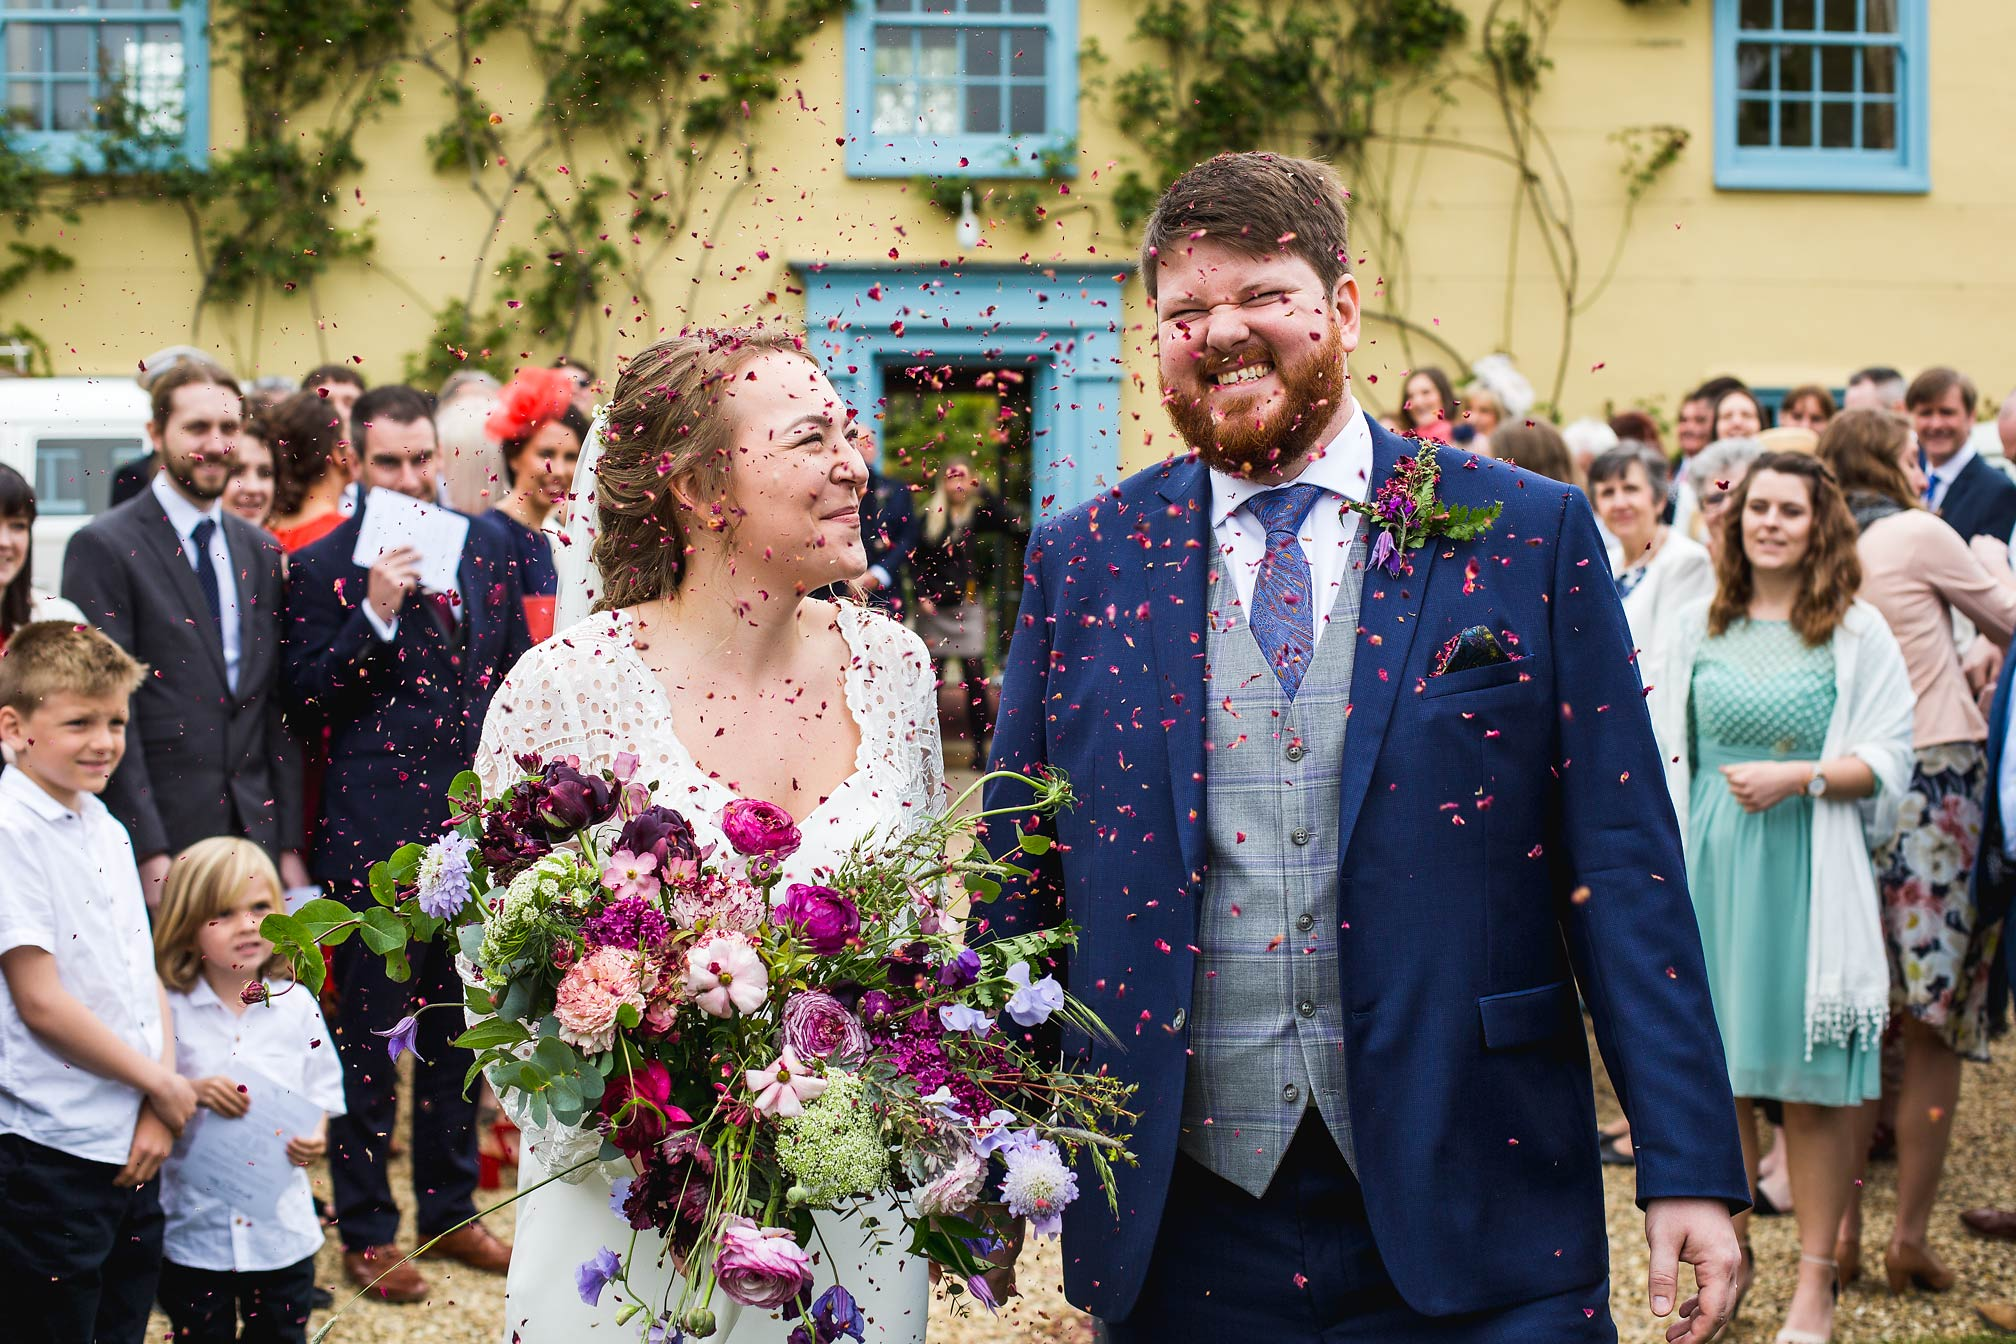 South Farm Wedding Photography - Confetti!